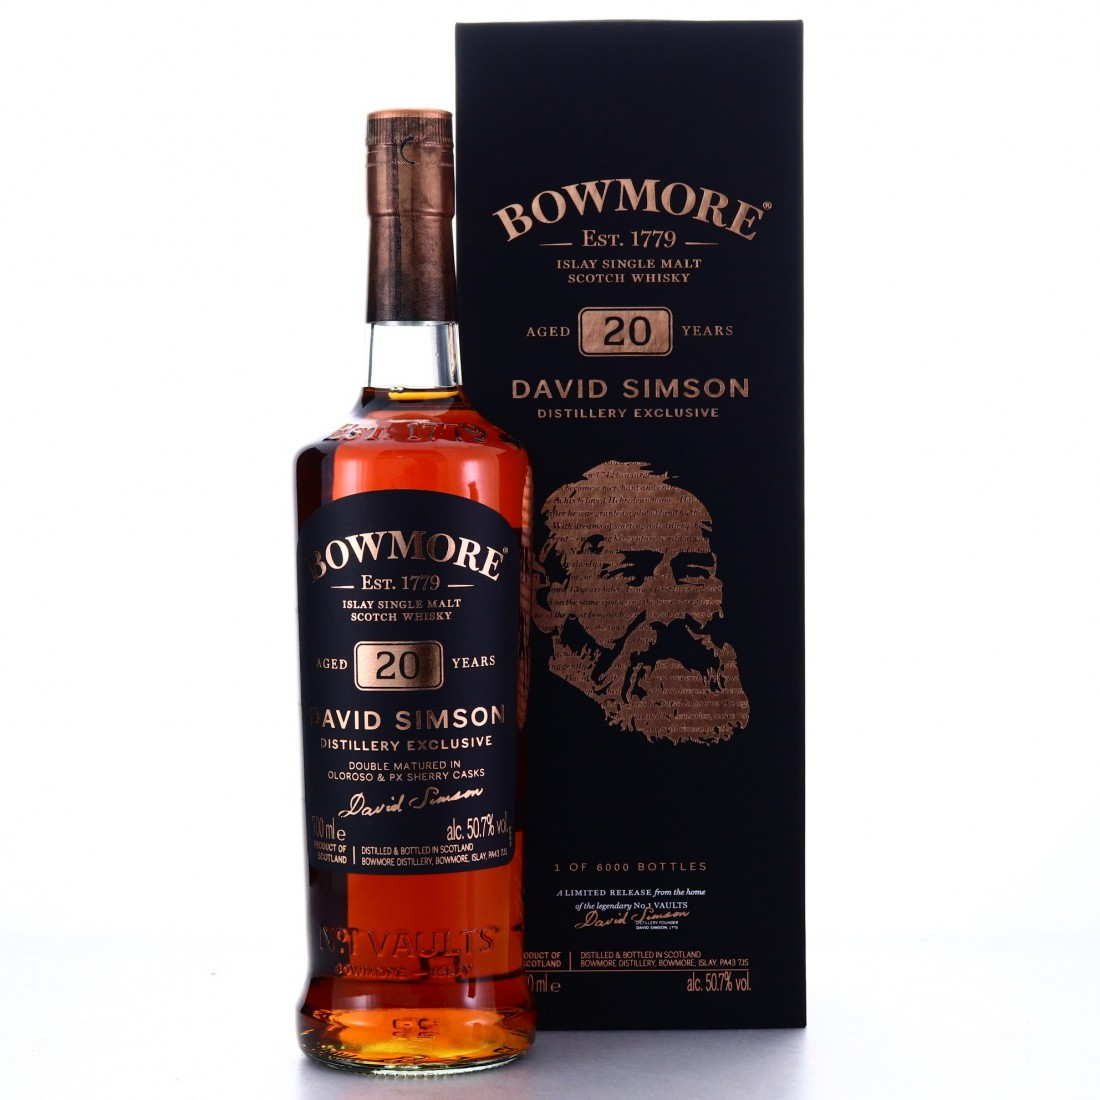 Bowmore 20 Year Old David Simson / Distillery Exclusive